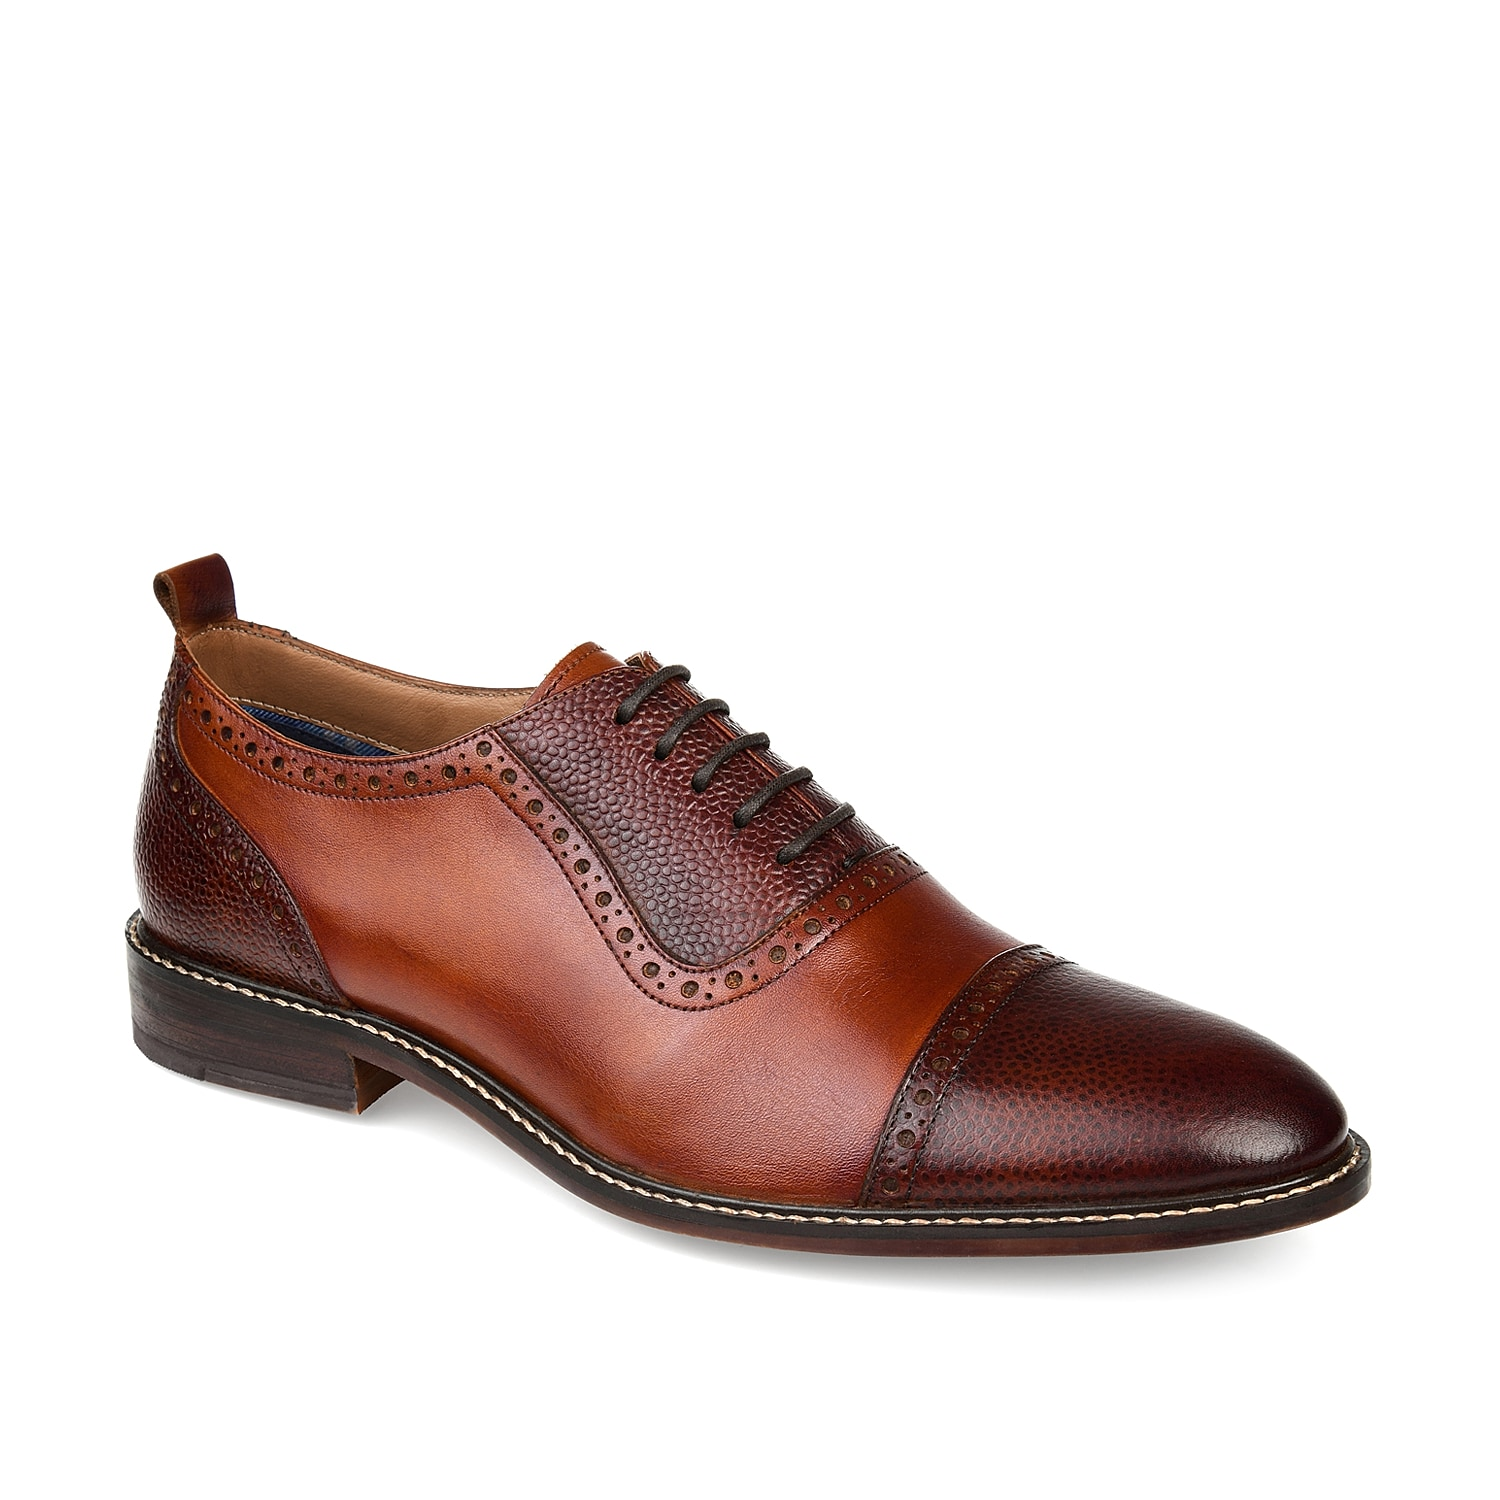 Keep your tailored style in check with the Lincoln oxfords from Thomas & Vine. These leather lace-ups feature classic cap toe styling and brogue detailing to bring the best of both worlds to your wardrobe.